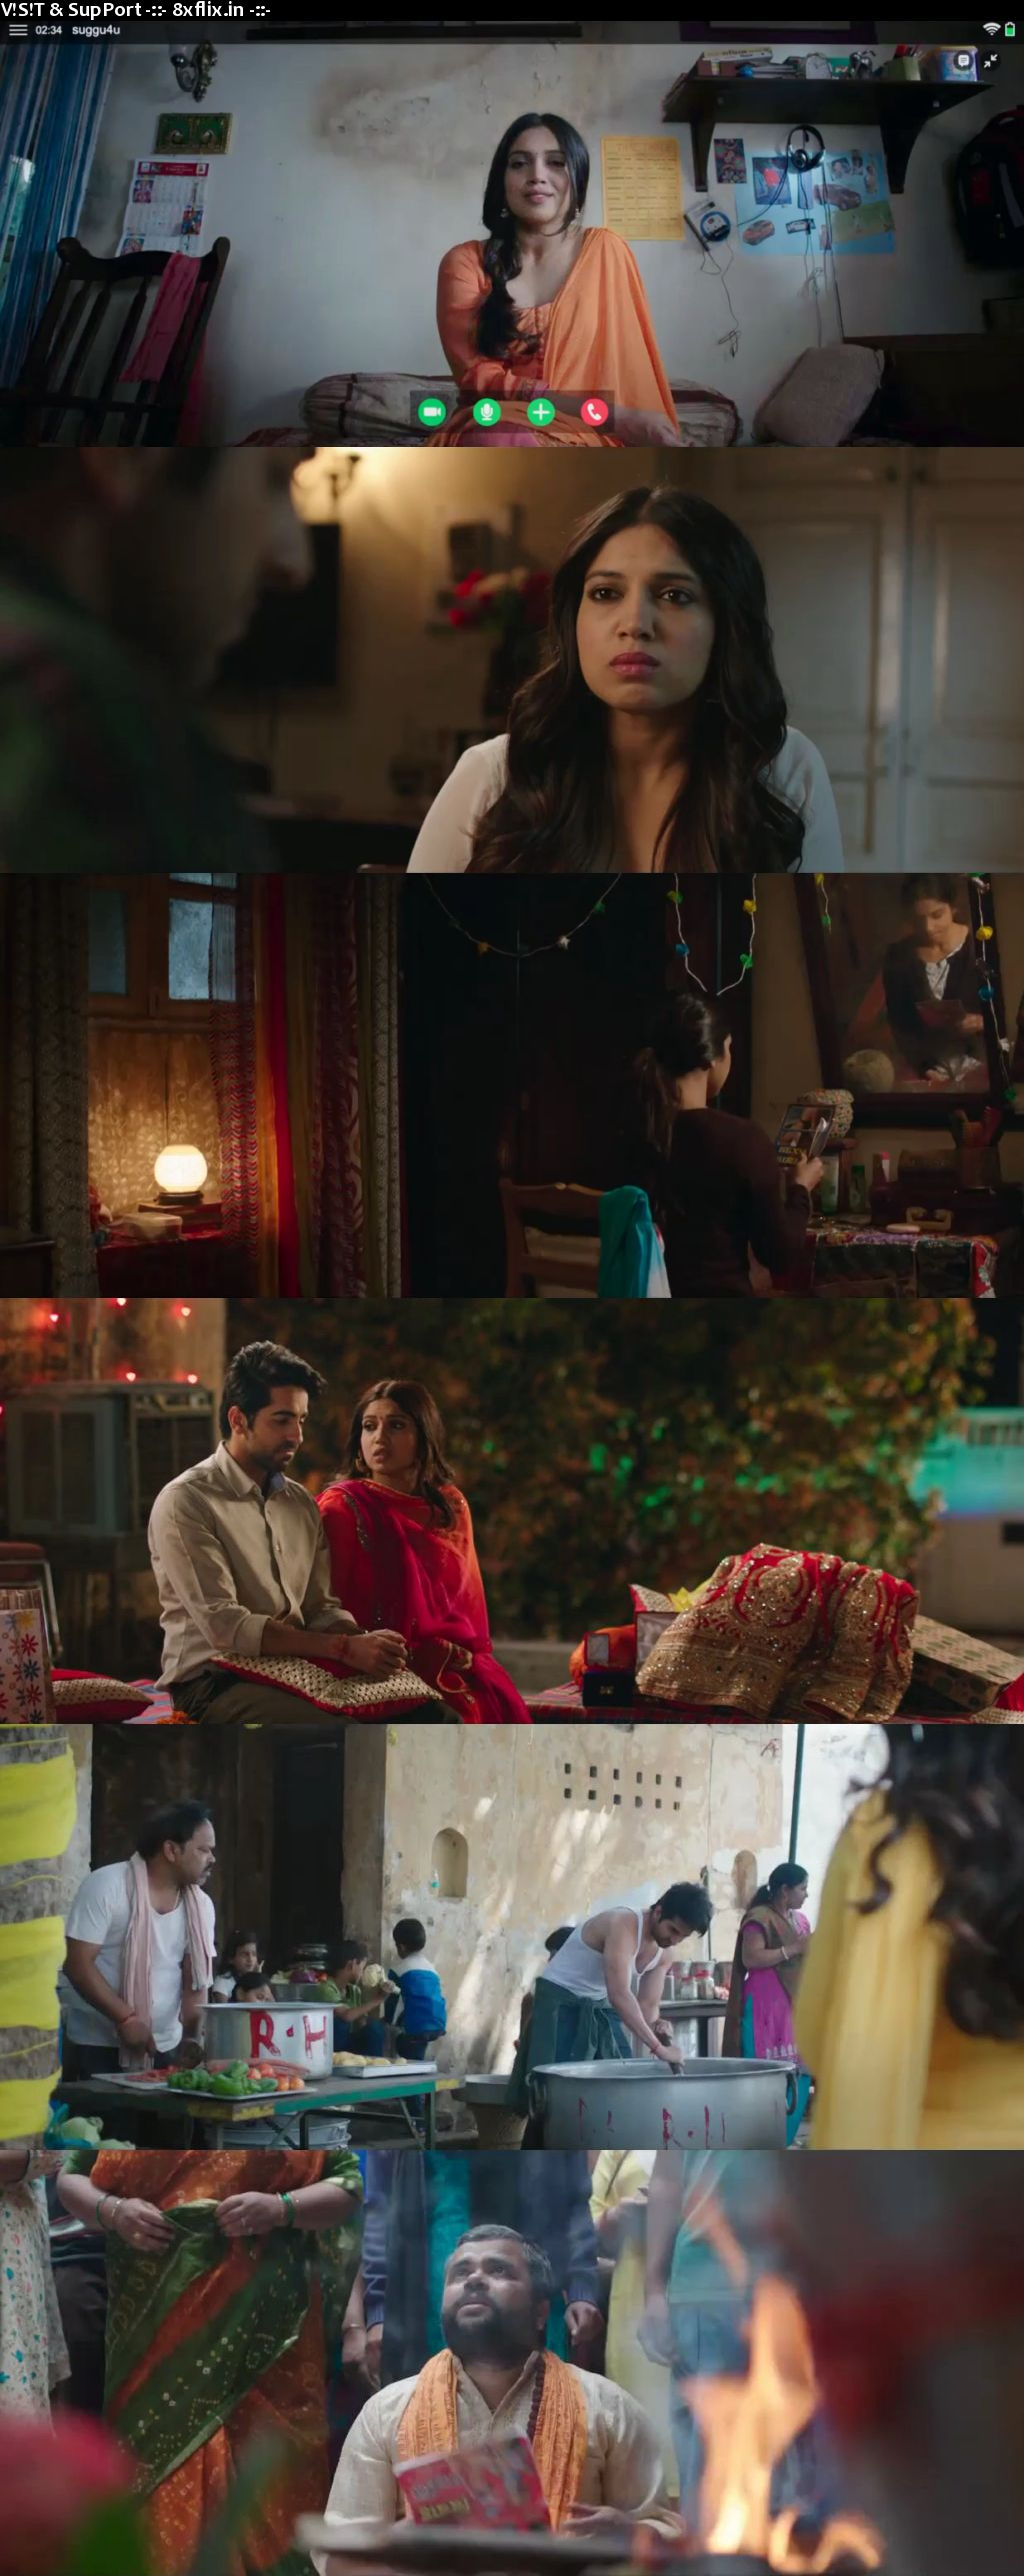 Shubh Mangal Saavdhan 2017 Full Hindi Movie Download 720p 480p HDRip HD